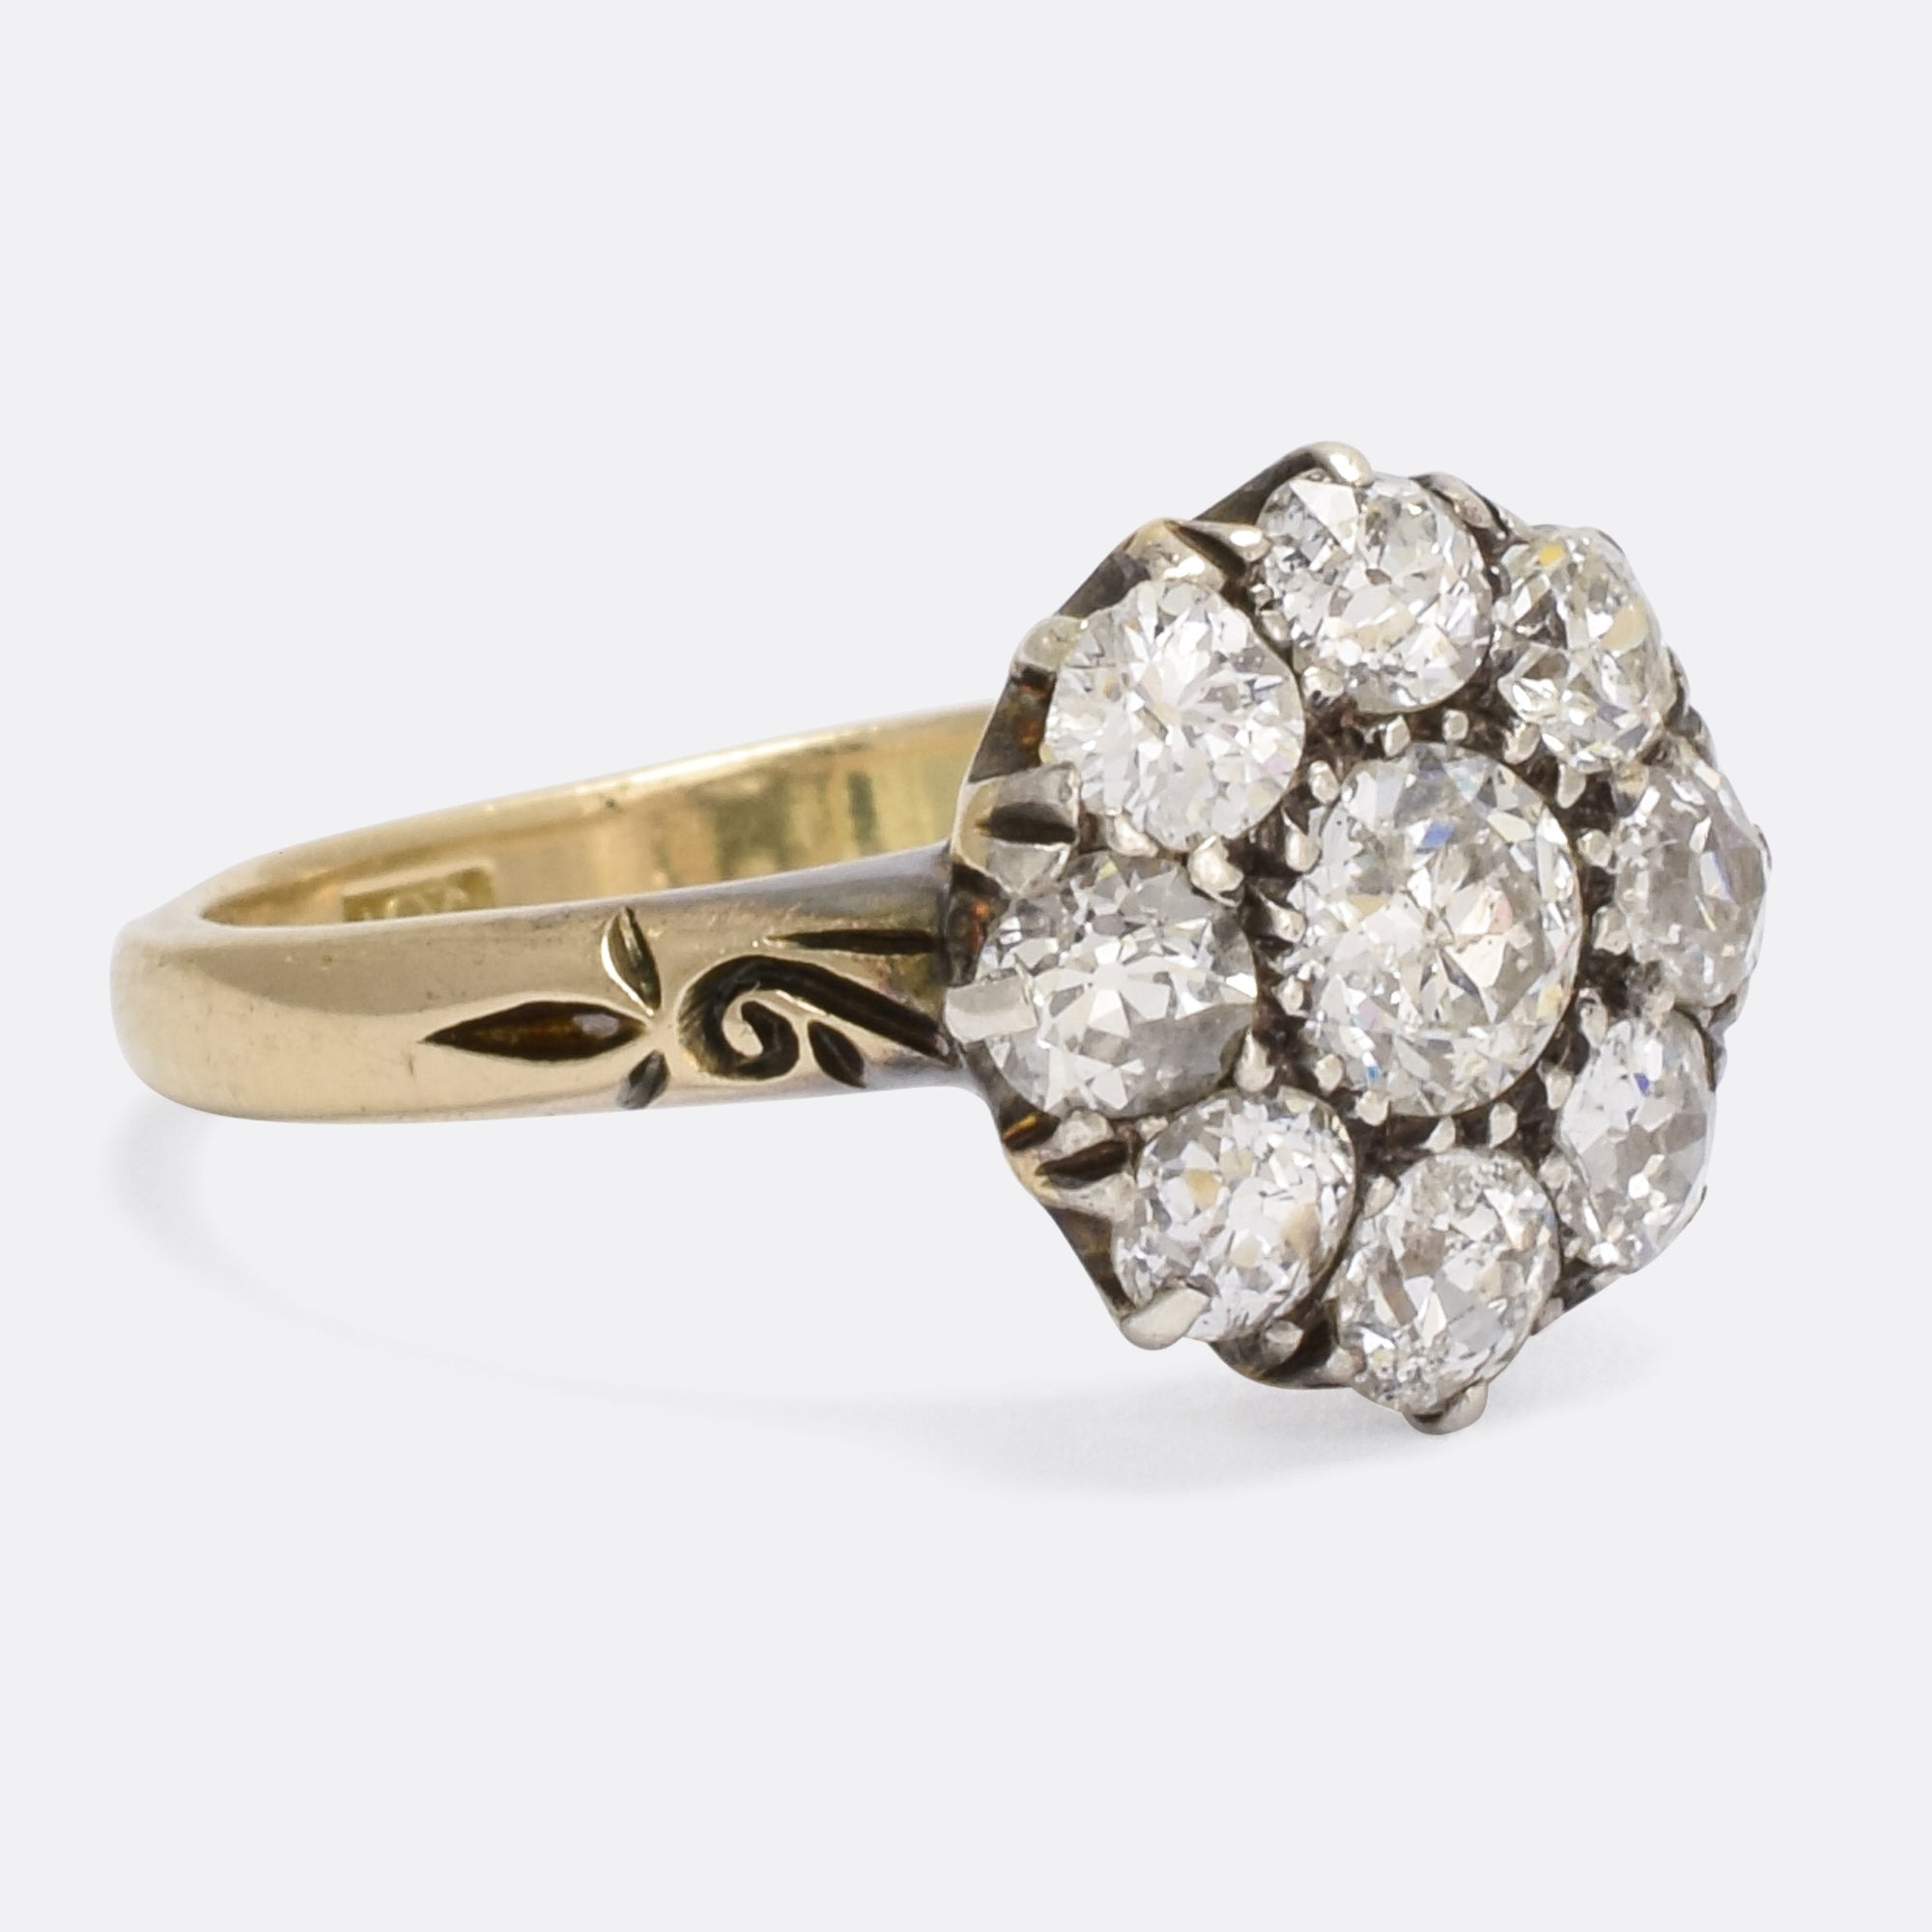 options rings dazzling a umpteen beautiful chip diamond choose in be blog rock and differences blend these are or the it engagement combination there between set right wedding days ring fledged full know from difference to bridal of